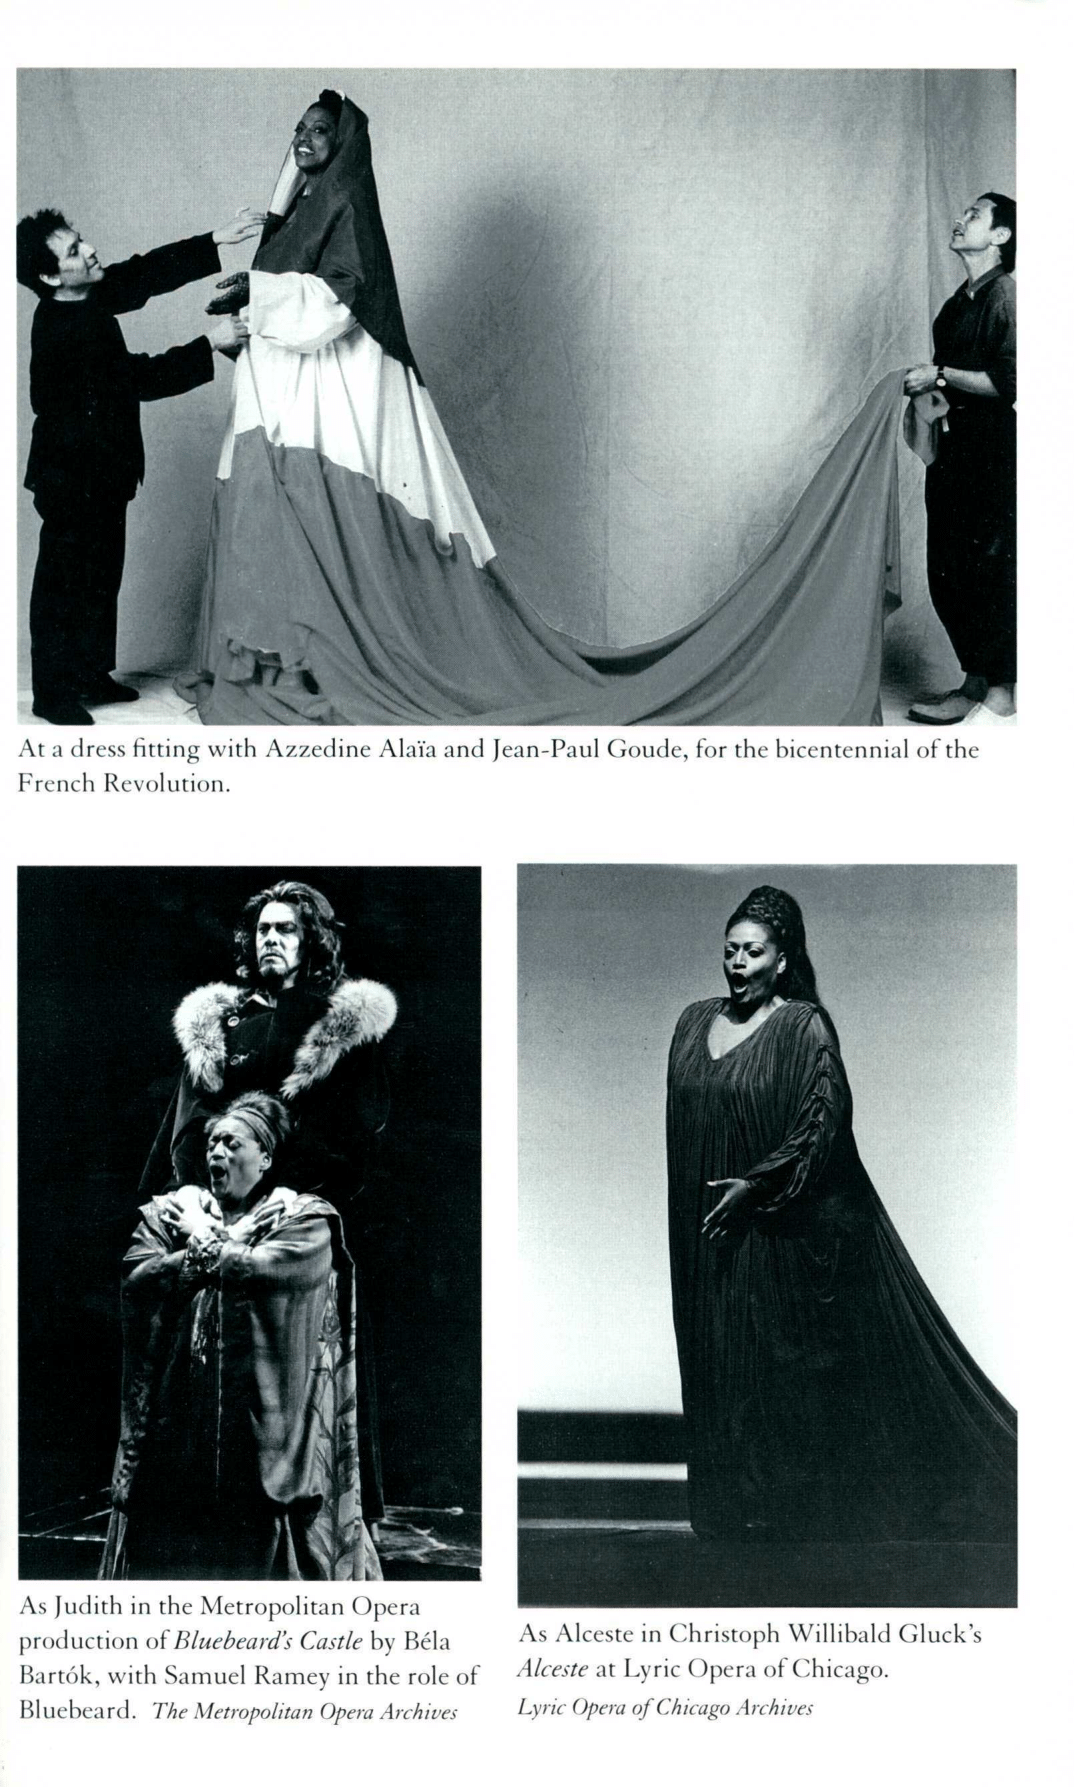 Pictures from Jessye Norman's autobiography